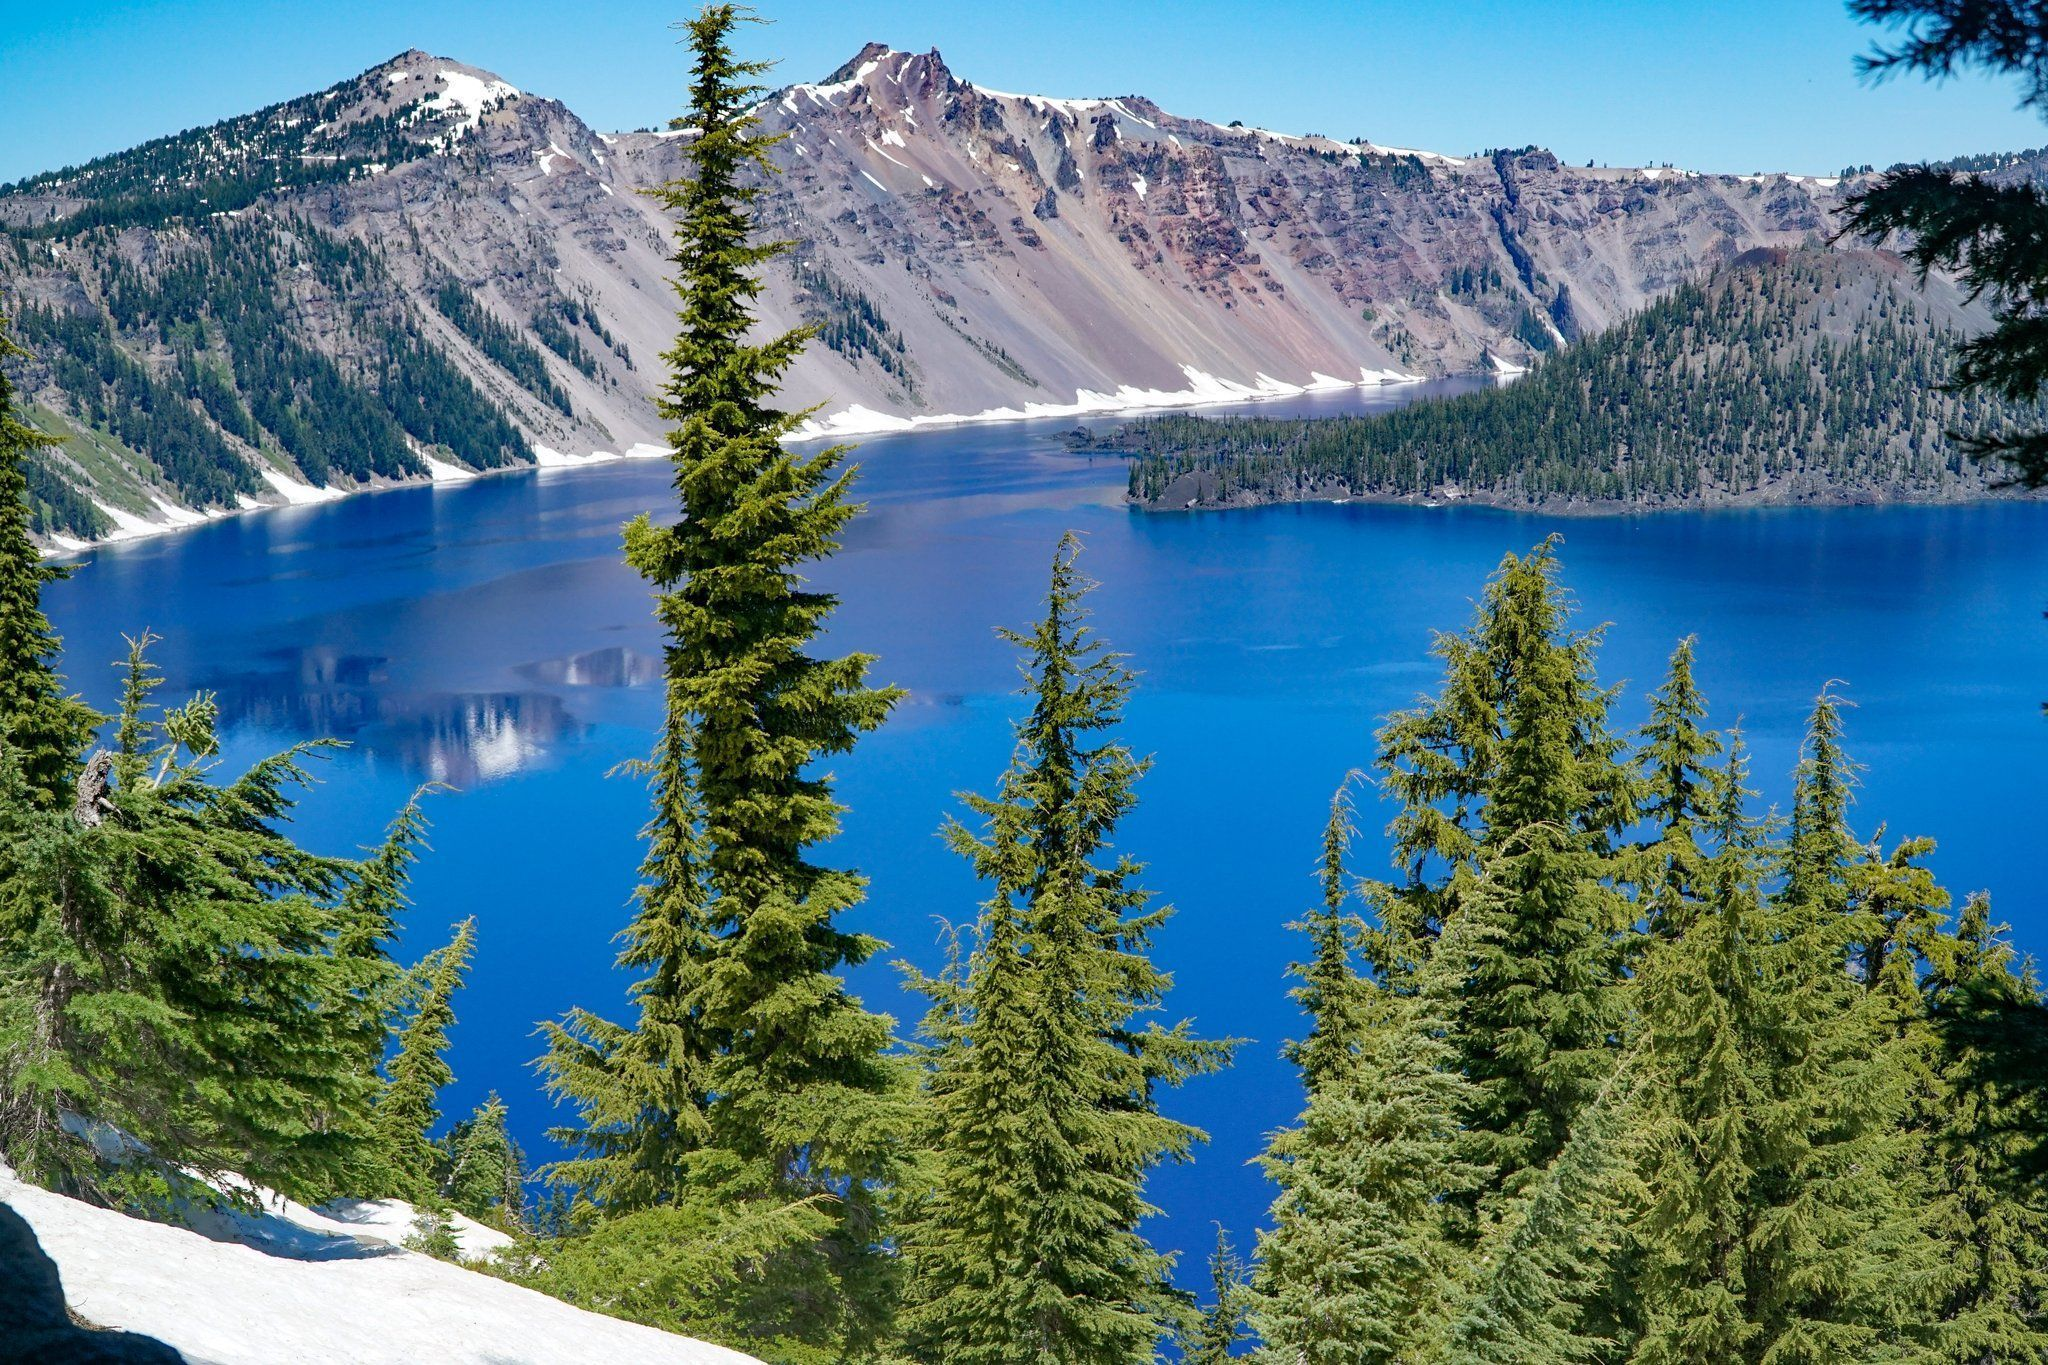 Crater Lake, Oregon #craterlakeoregon Crater Lake, Oregon #craterlakeoregon Crater Lake, Oregon #craterlakeoregon Crater Lake, Oregon #craterlakenationalpark